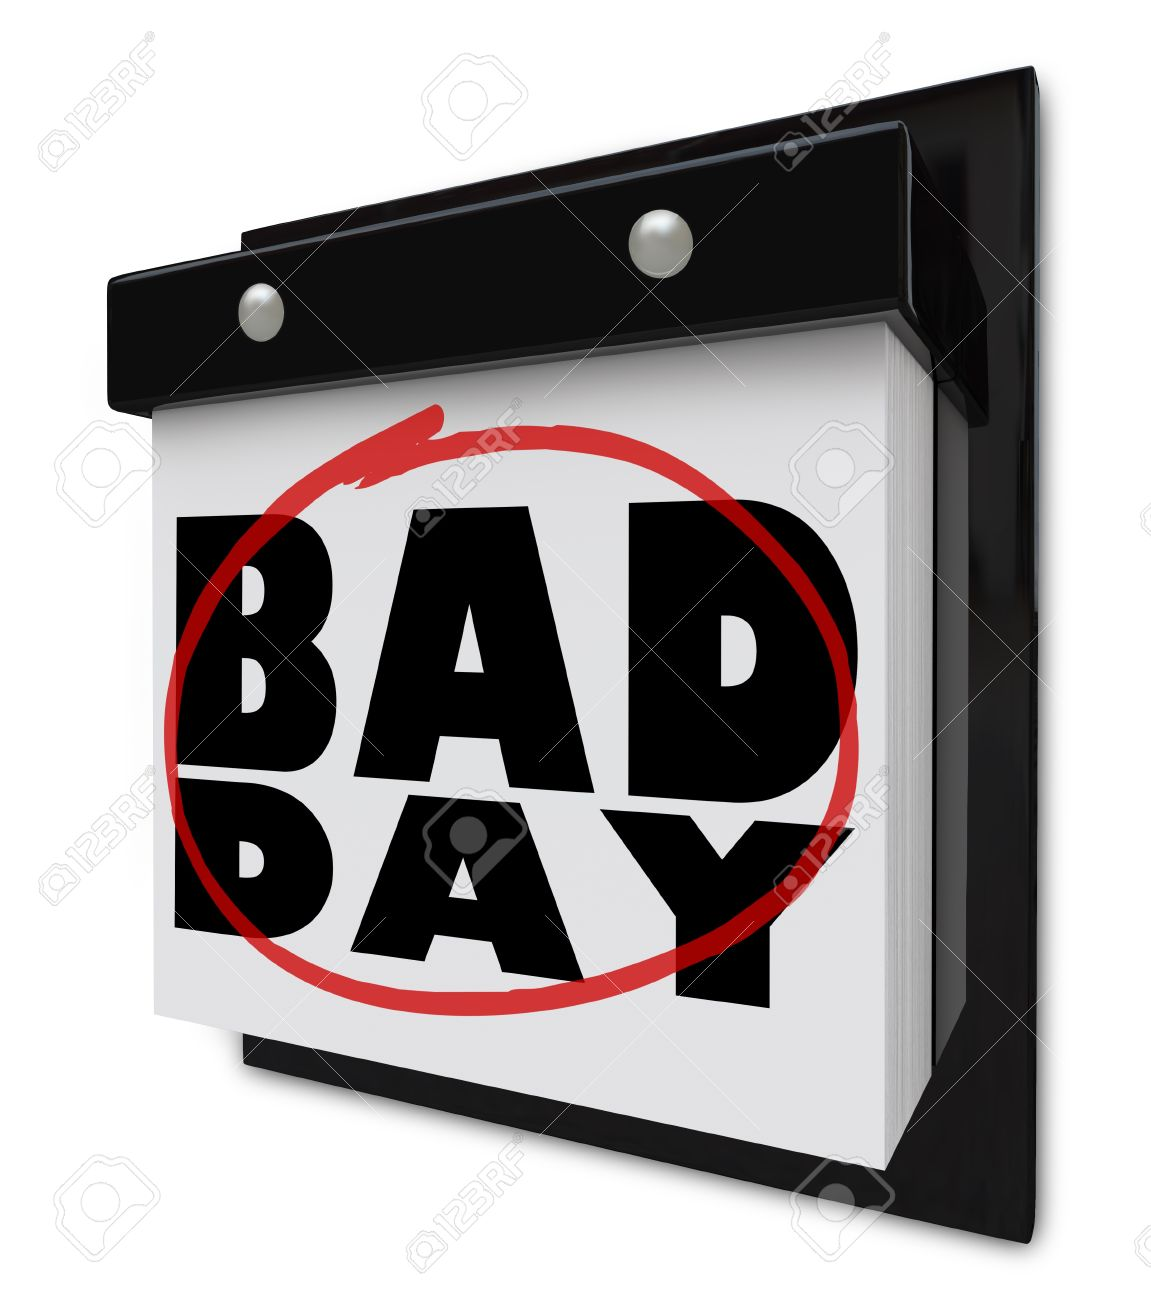 A wall calendar with tear-away pages, and words Bad Day, symbolizing a date that is dreaded, such as a due date for bills or taxes, or a day filled with disappointment Stock Photo - 9413744